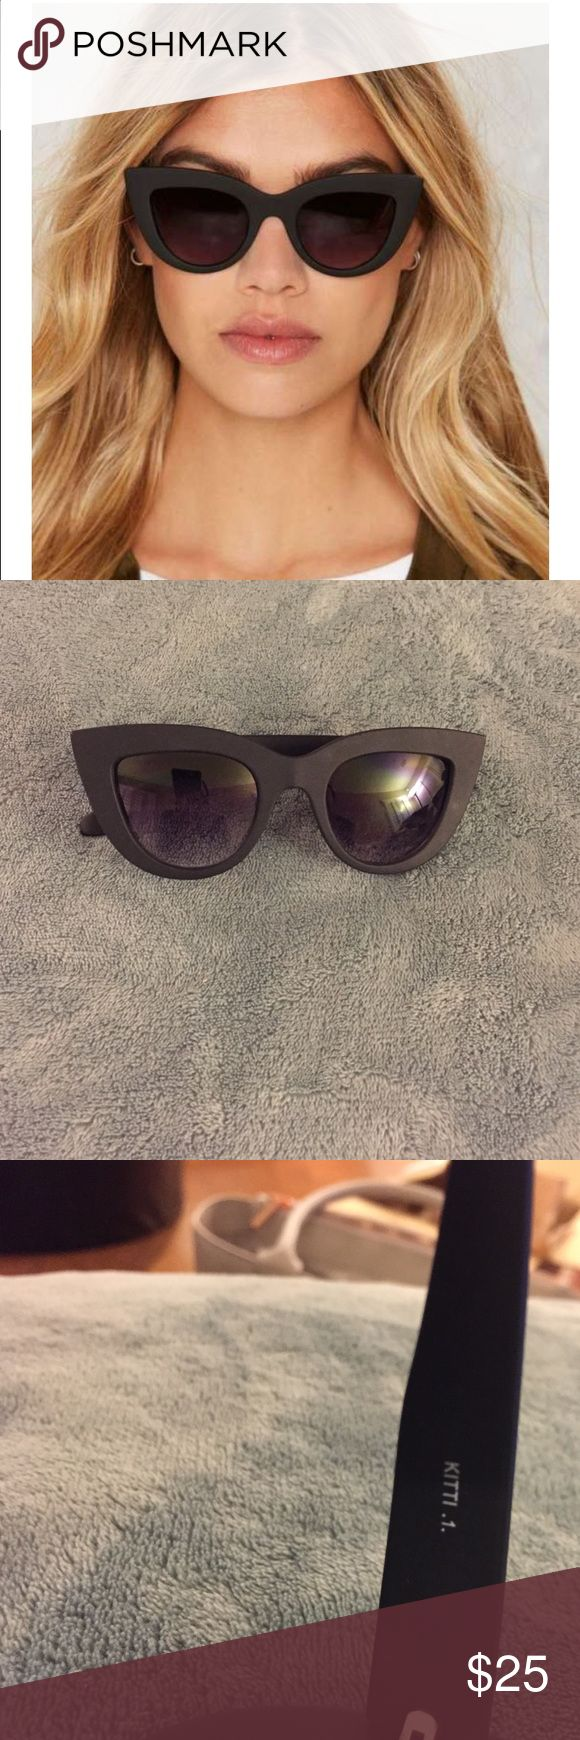 "Quay Australia ""Kitti"" Shades Quay Australia "" Kitti "" Shades                                 Comes as is ( no case)                                              Sunglasses were given inside a "" Mystery Box"" purchased  from LA Fashion/Beauty Blogger Marianna Hewitt.                                                      Looks to be in mild used condition . Quay Australia Accessories Glasses"